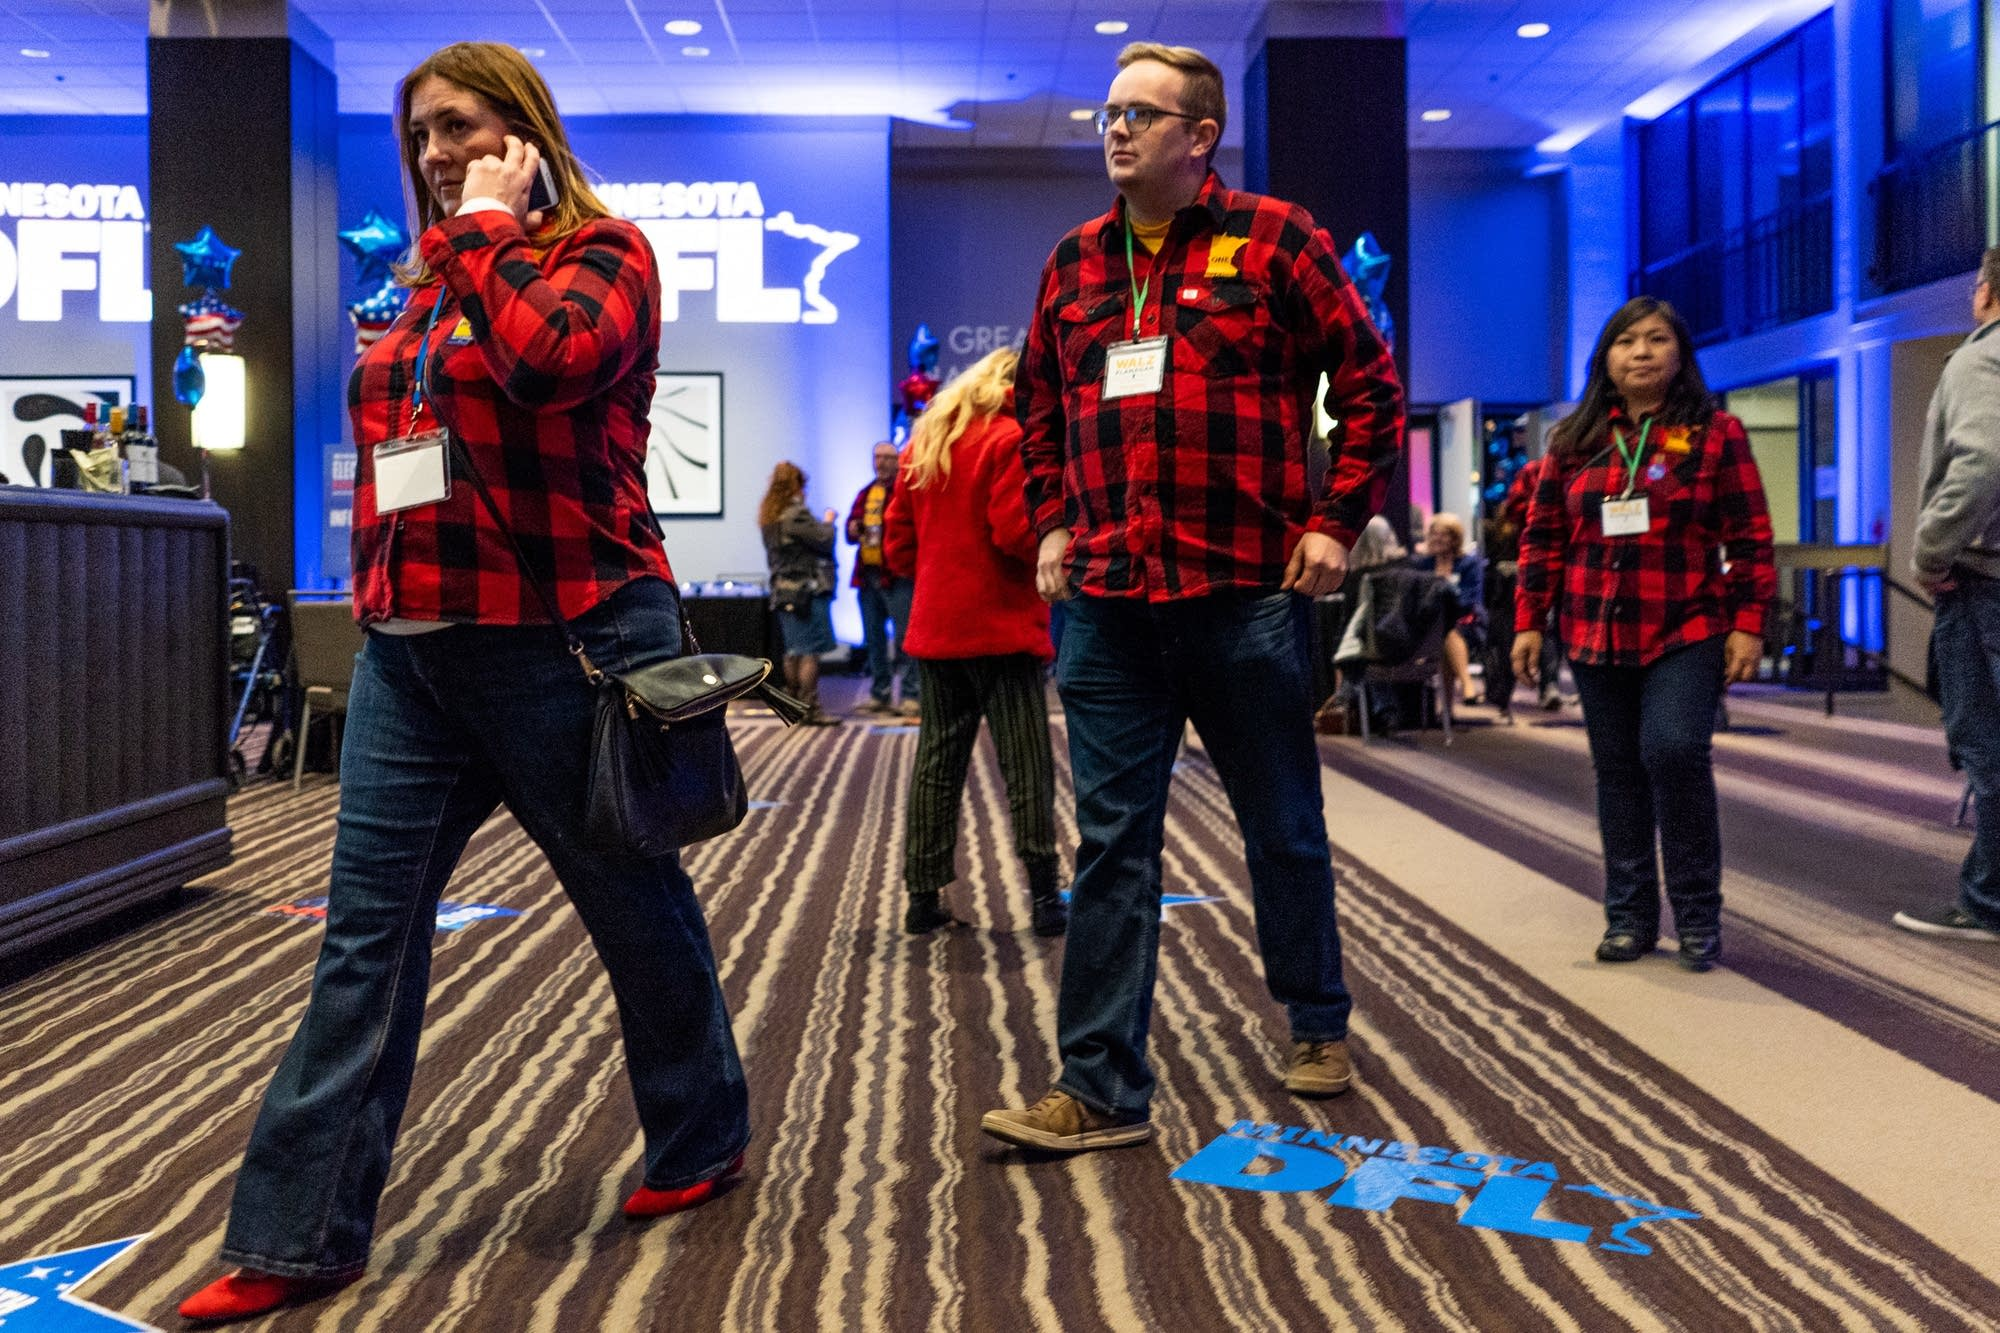 Supporters and staff of Tim Walz wear matching custom red flannel shirts.